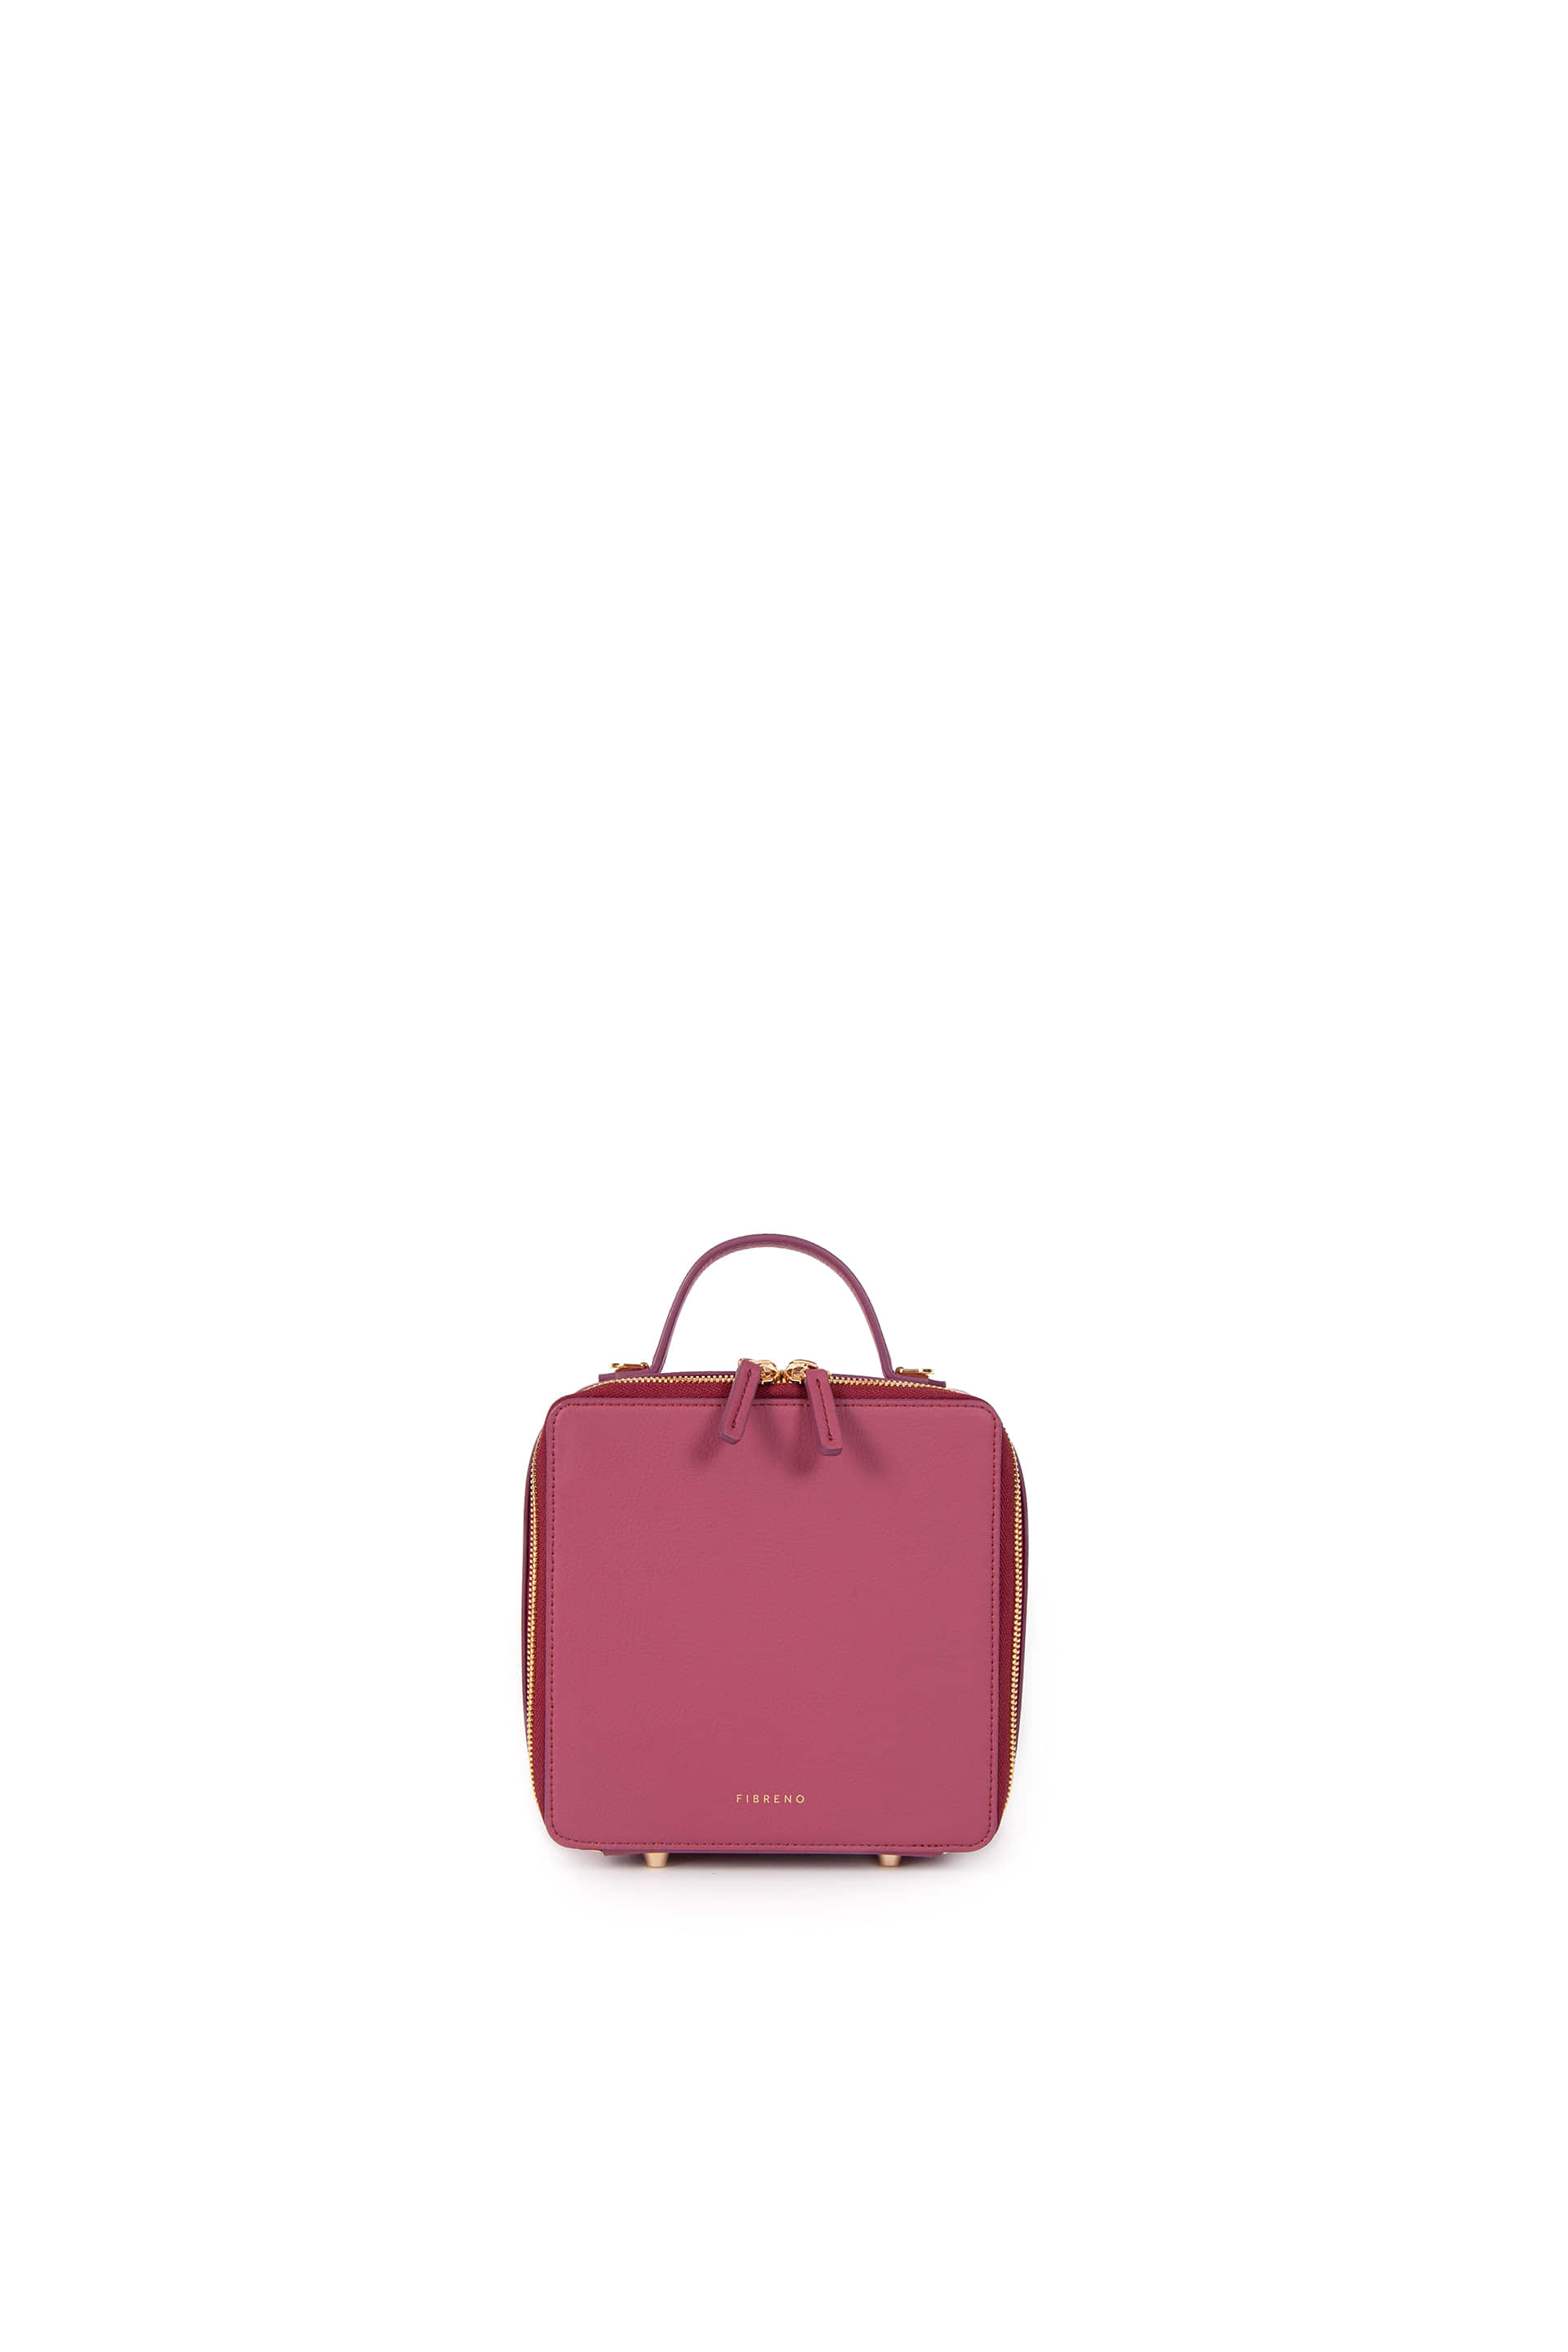 SQUARE BAG 05 Cherry Pink